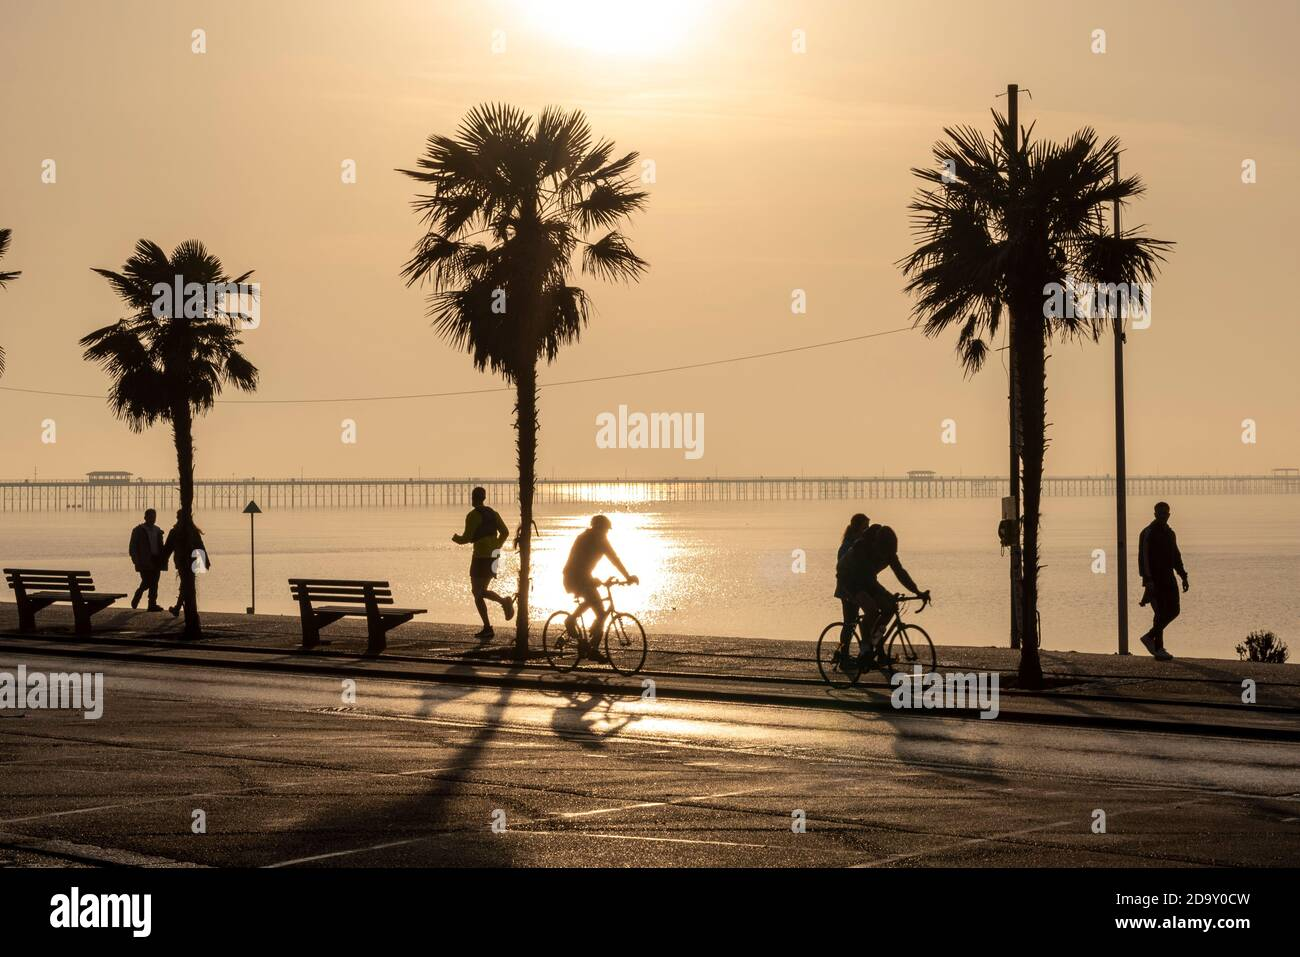 southend-on-sea-essex-uk-8th-nov-2020-remembrance-sunday-has-dawned-bright-but-hazy-with-many-people-taking-the-chance-to-exercise-along-the-seafront-of-southend-on-sea-during-the-second-covid-19-lockdown-period-silhouette-of-people-and-palm-trees-2D9Y0CW.jpg